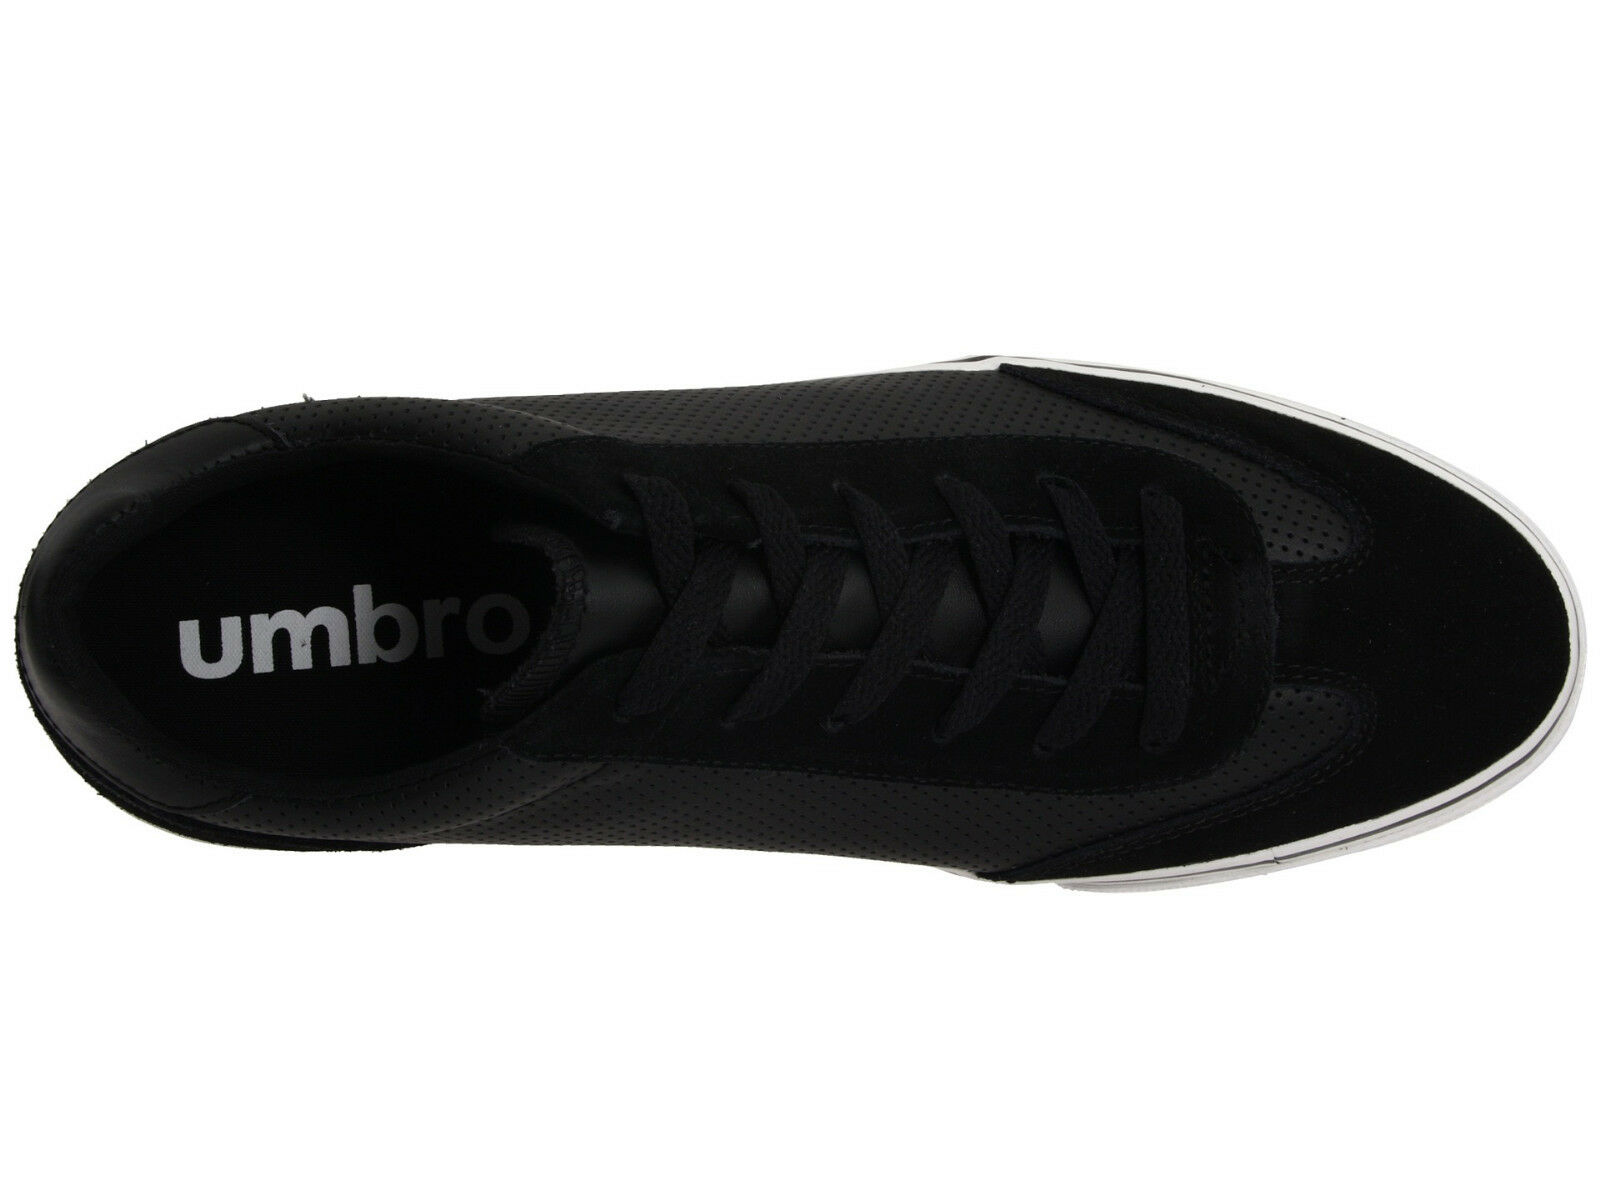 Nib UMBRO Glide Leather PREMIUM ATHLETIC STYLE LEATHER SHOES SZ 13 M